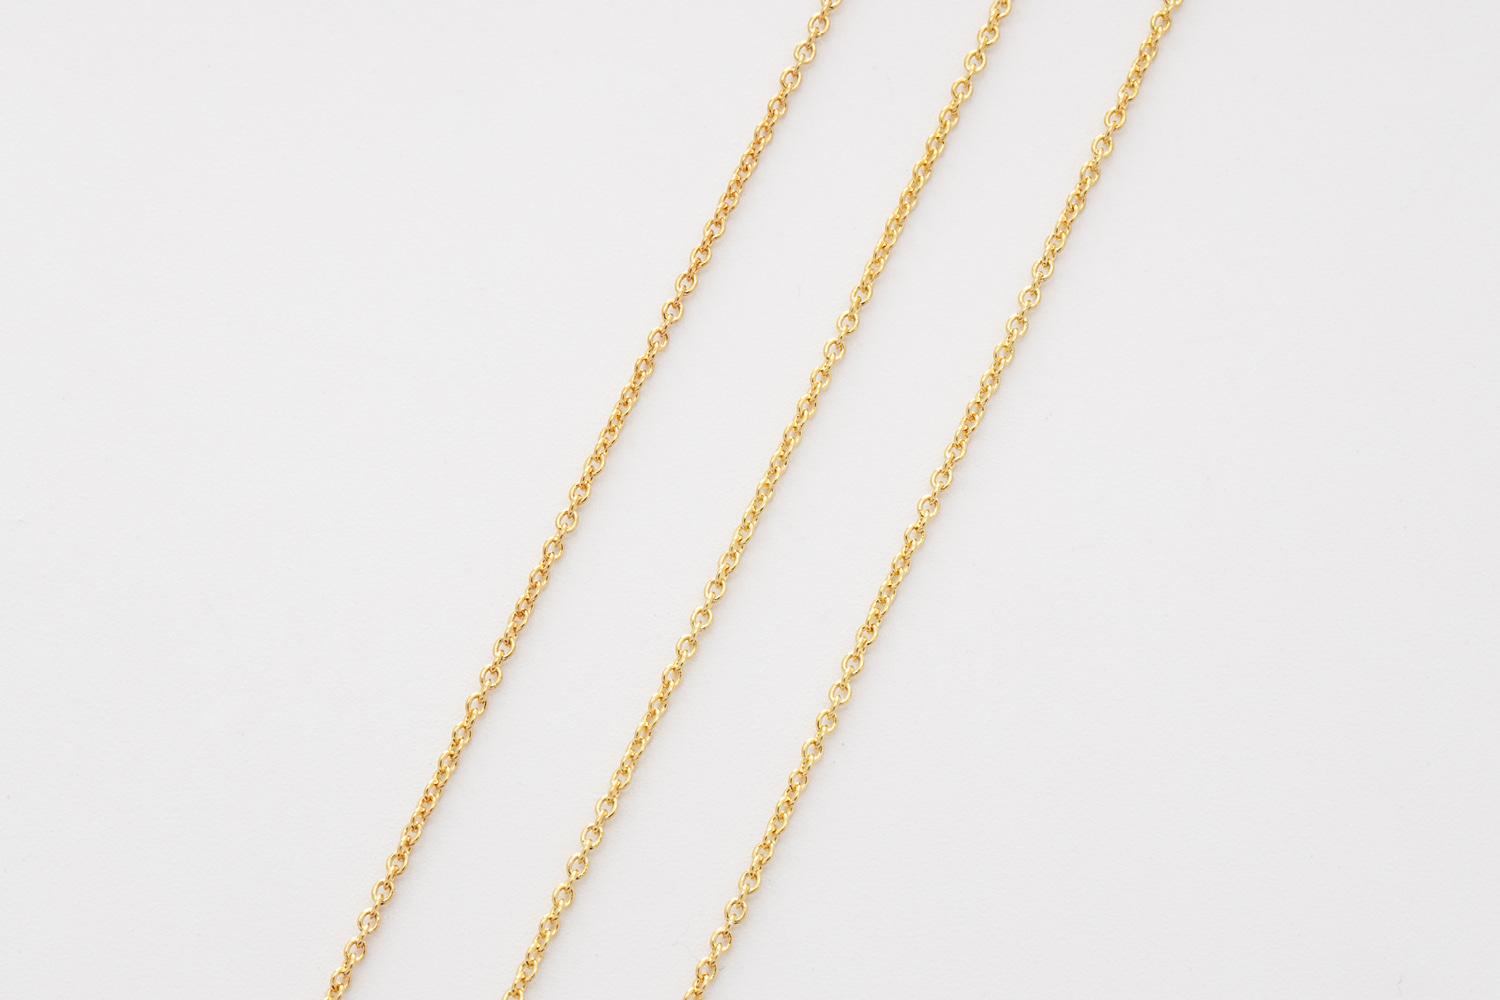 [CJ03-03]Chain 230S, Nickel free, 10m, 16K gold plated copper brass, Design chain, Jewelry making, 1.3x1.5mm